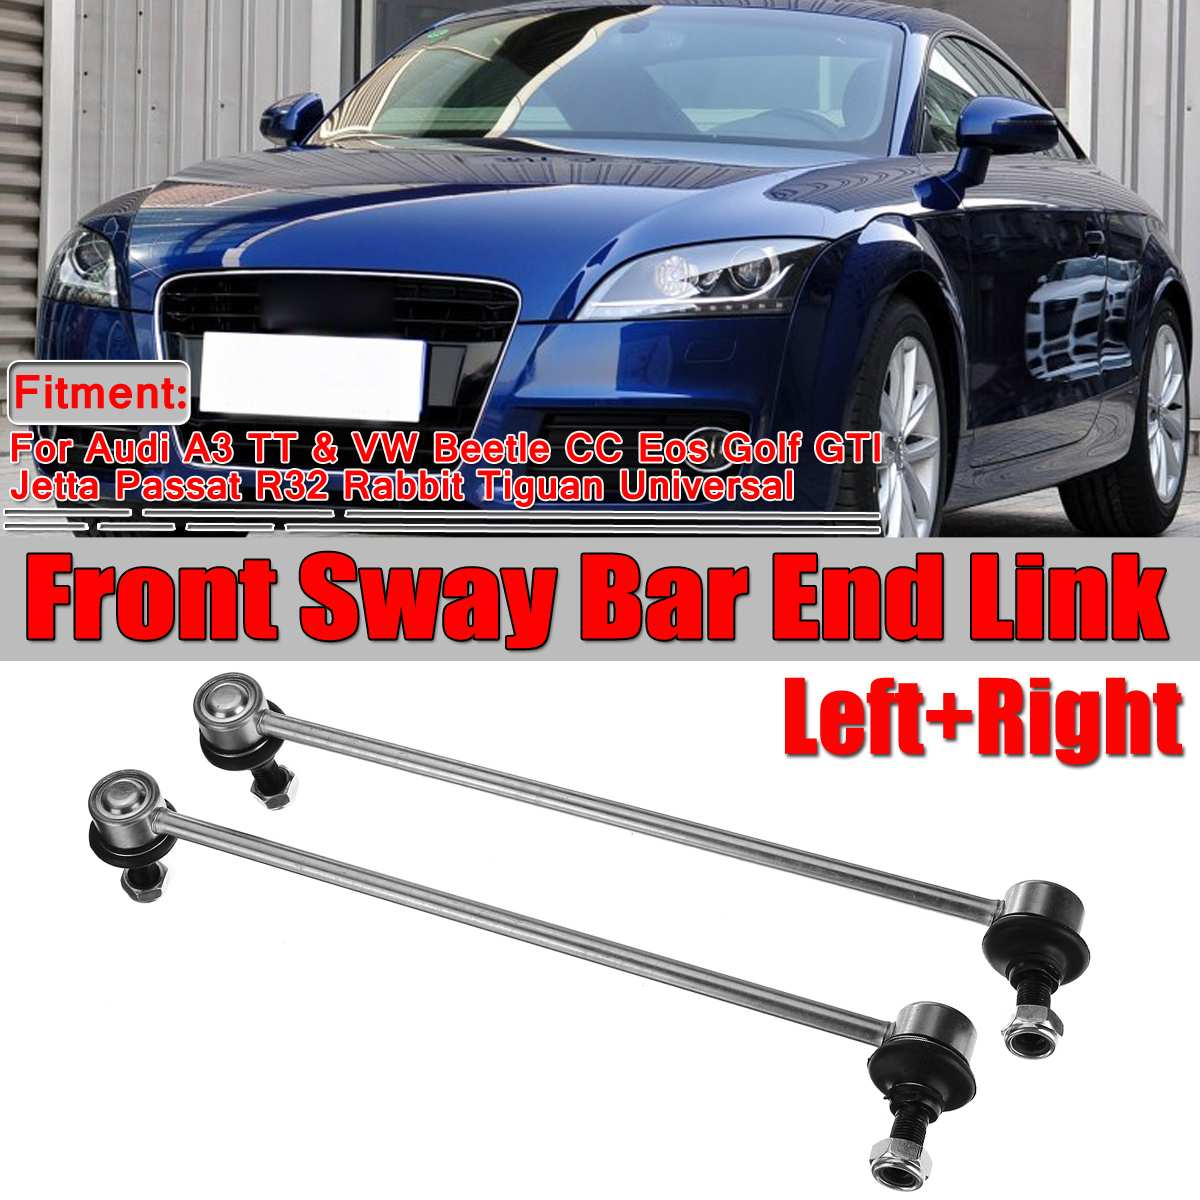 A Pair Car Front Sway Bar End Link For Audi A3 TT For VW For  Golf Eos Beetle Jetta Passat Rabbit AM-479870016